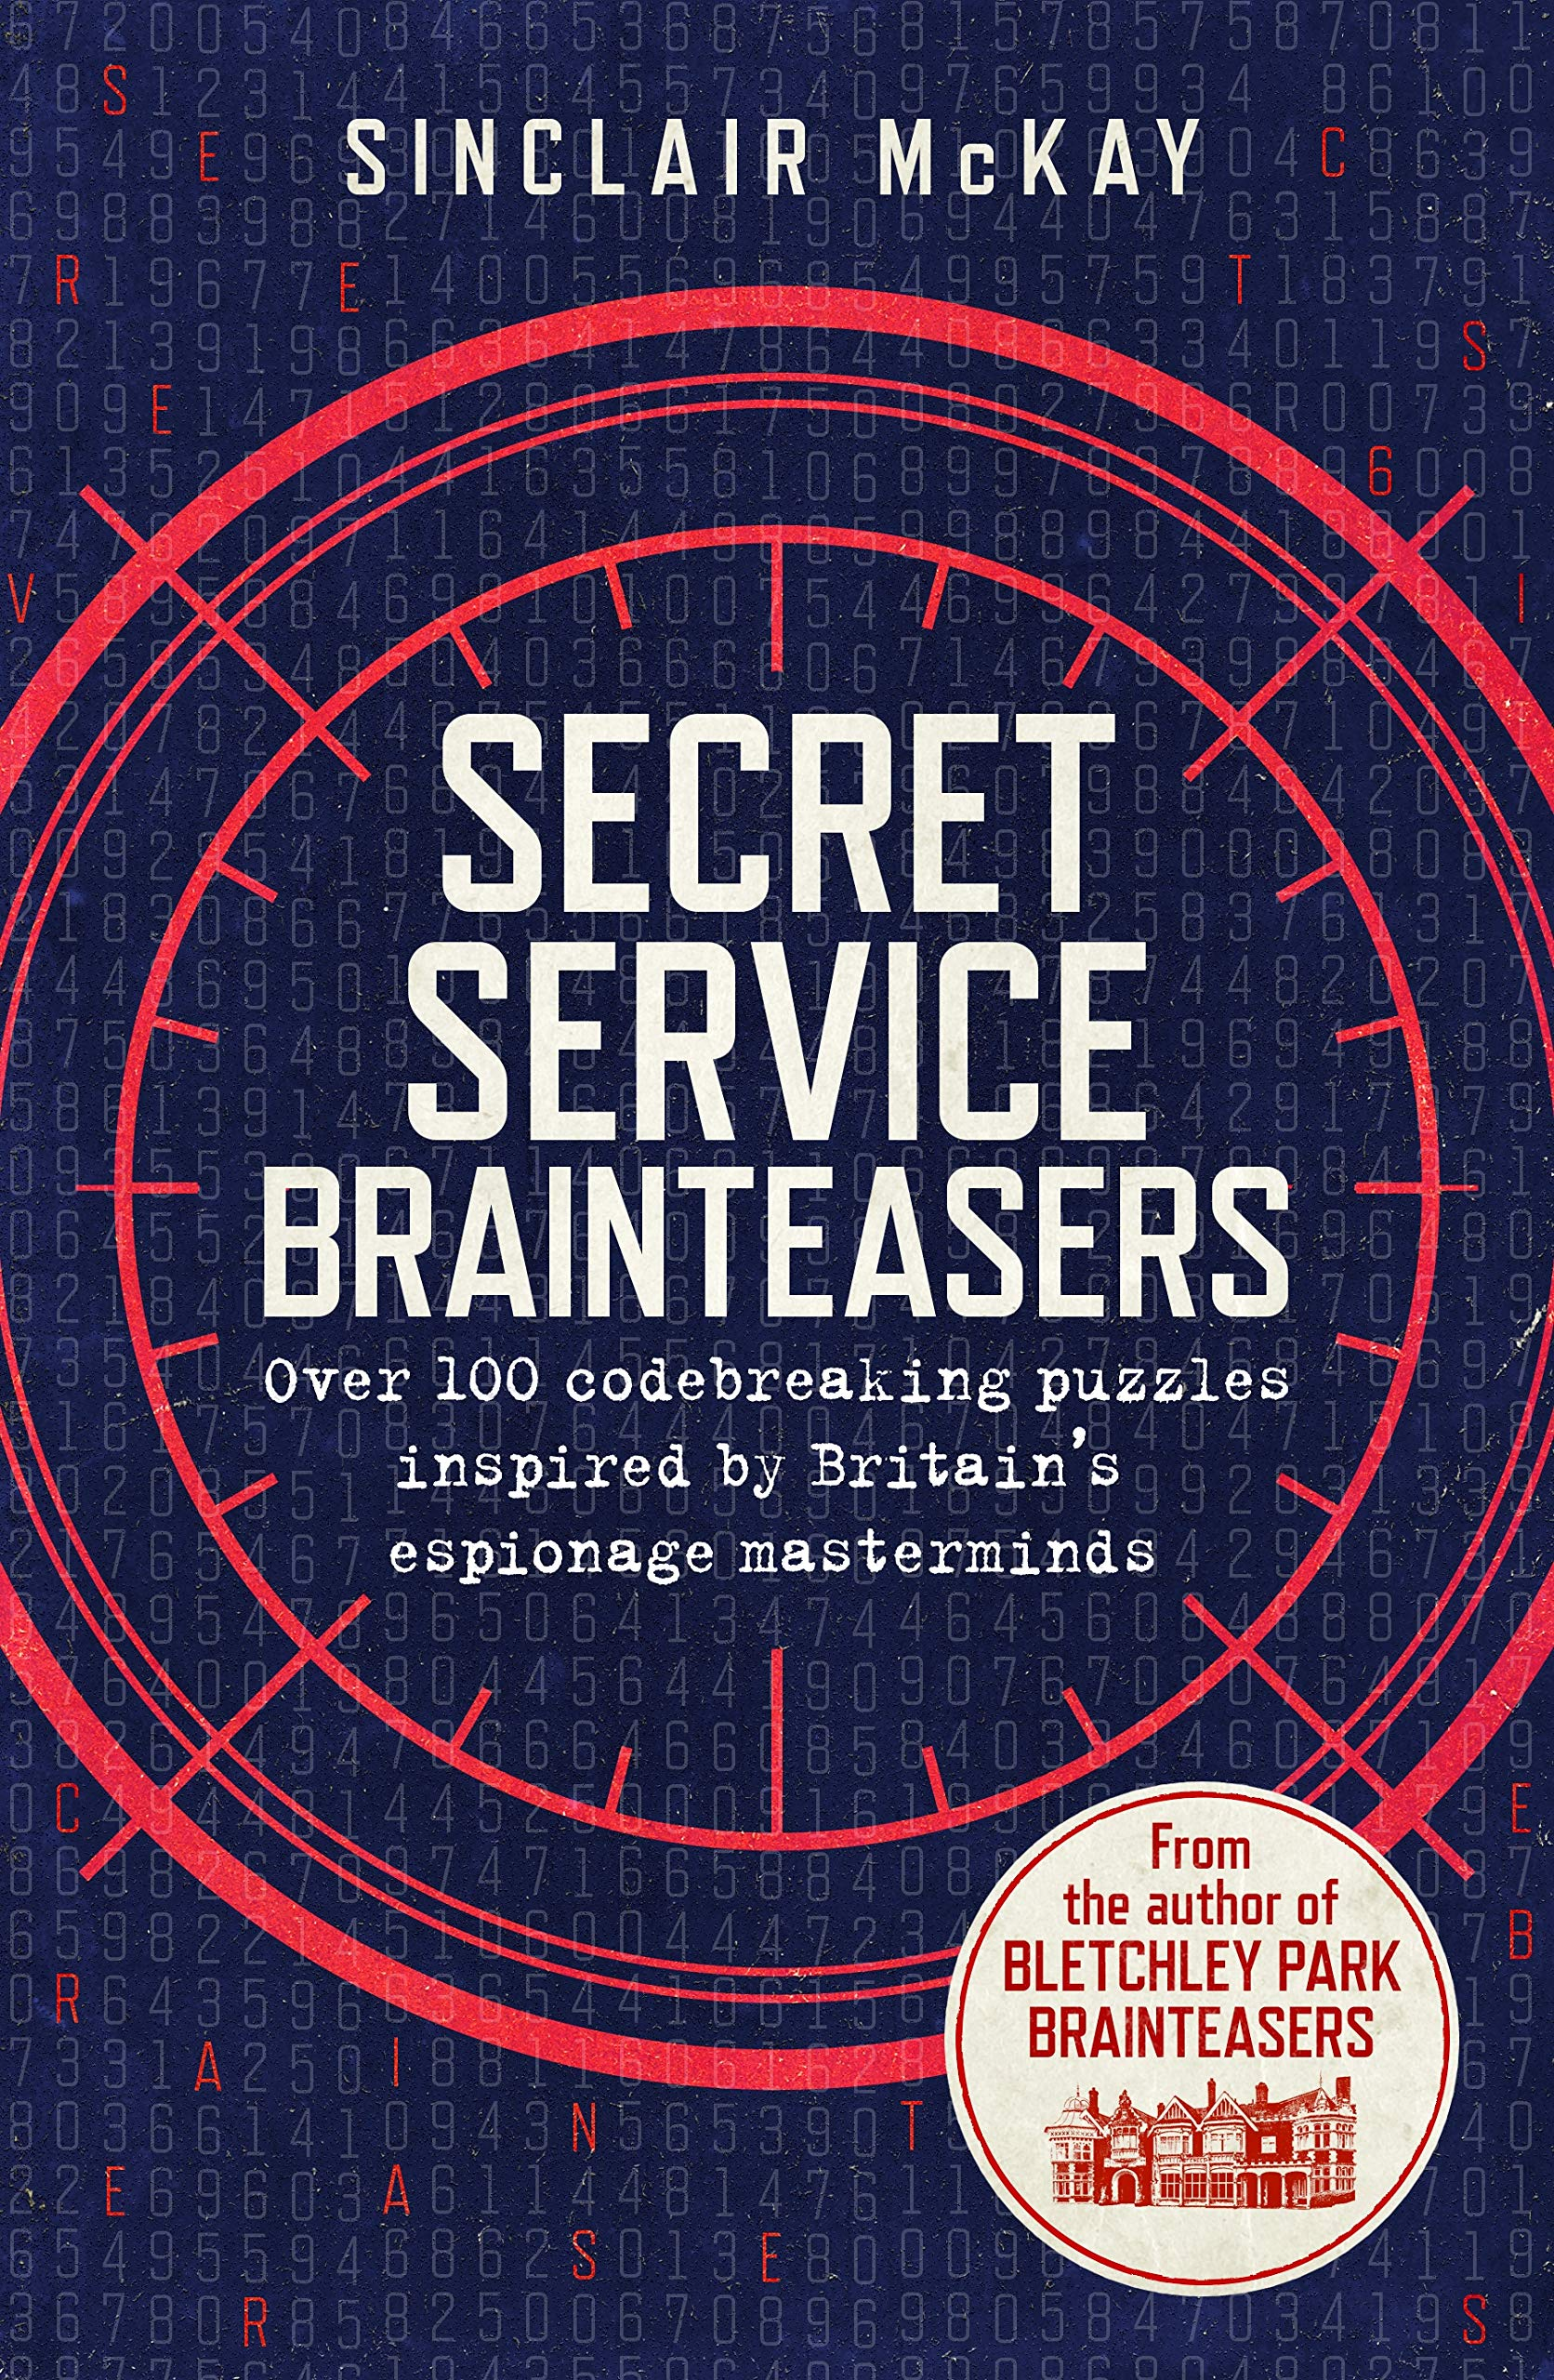 Image result for Secret Service Brain Teasers: Do You Have What it Takes to Become a Spy? By Sinclair Mckay